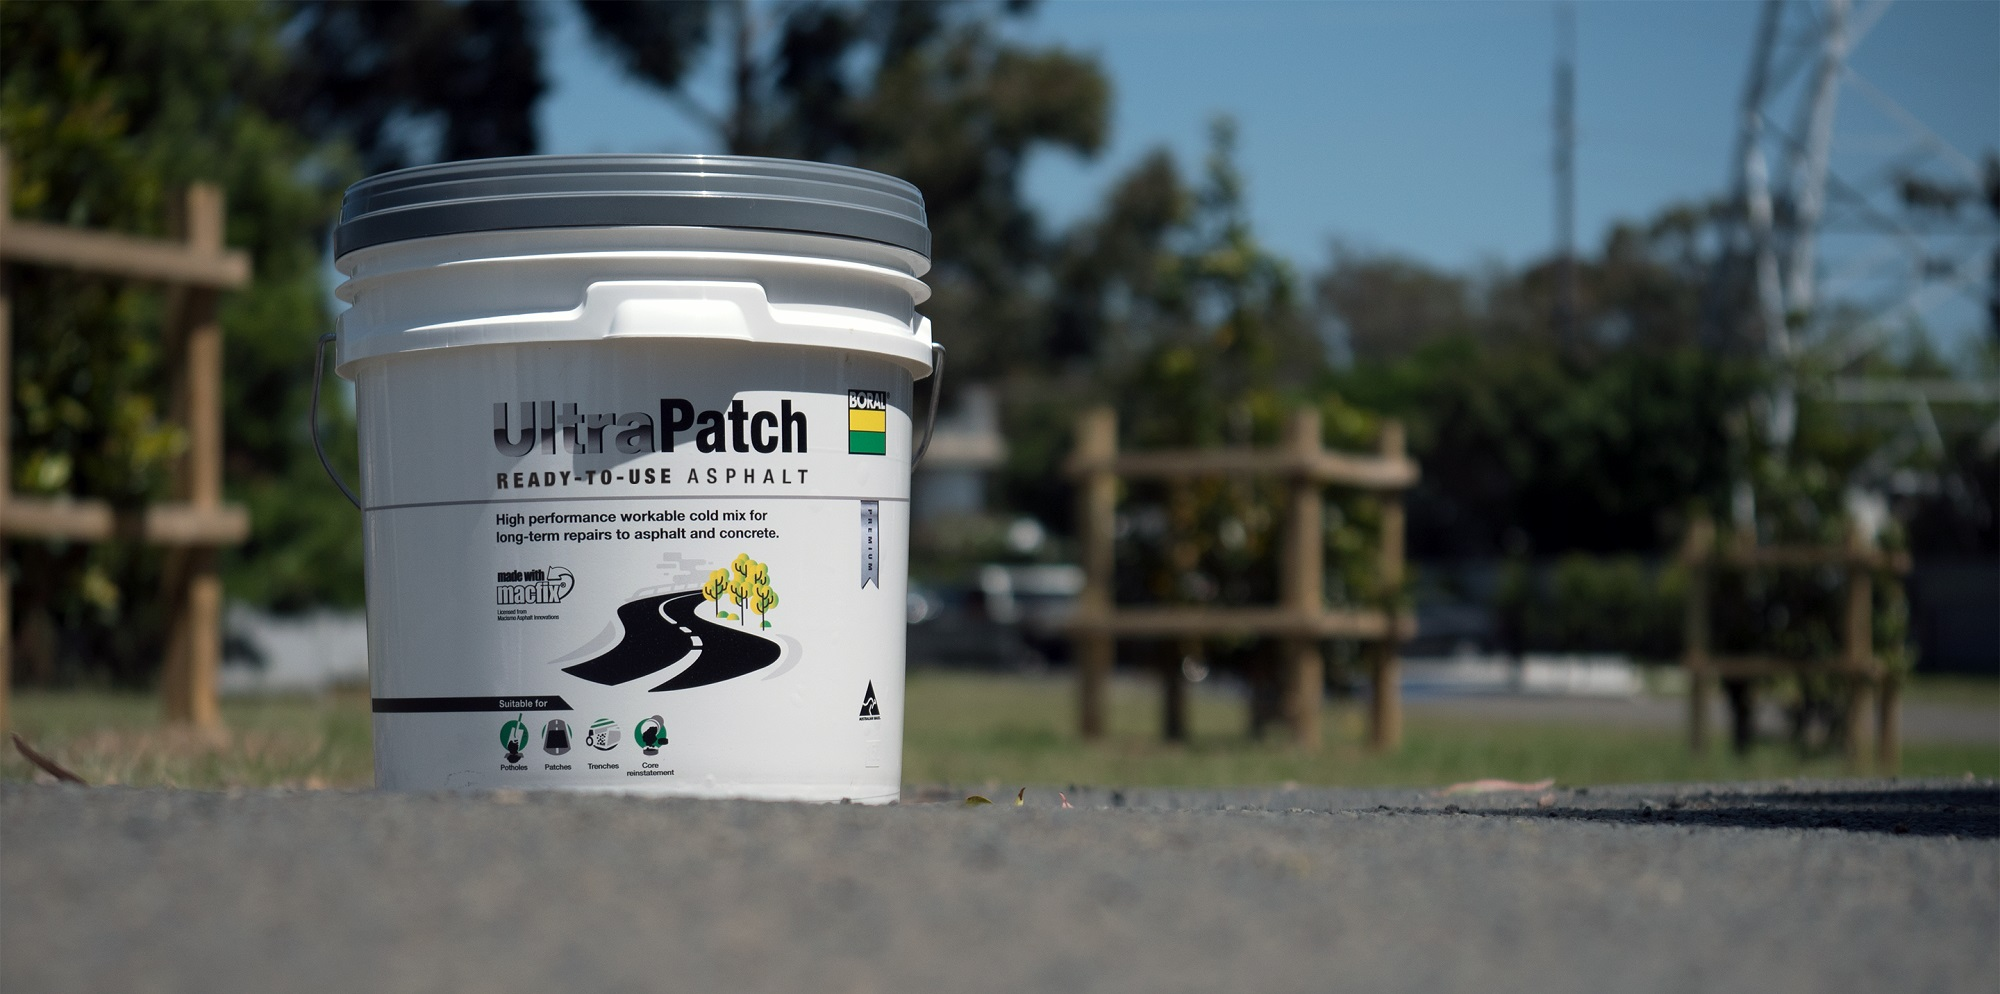 UltraPatch high performance cold mix asphalt